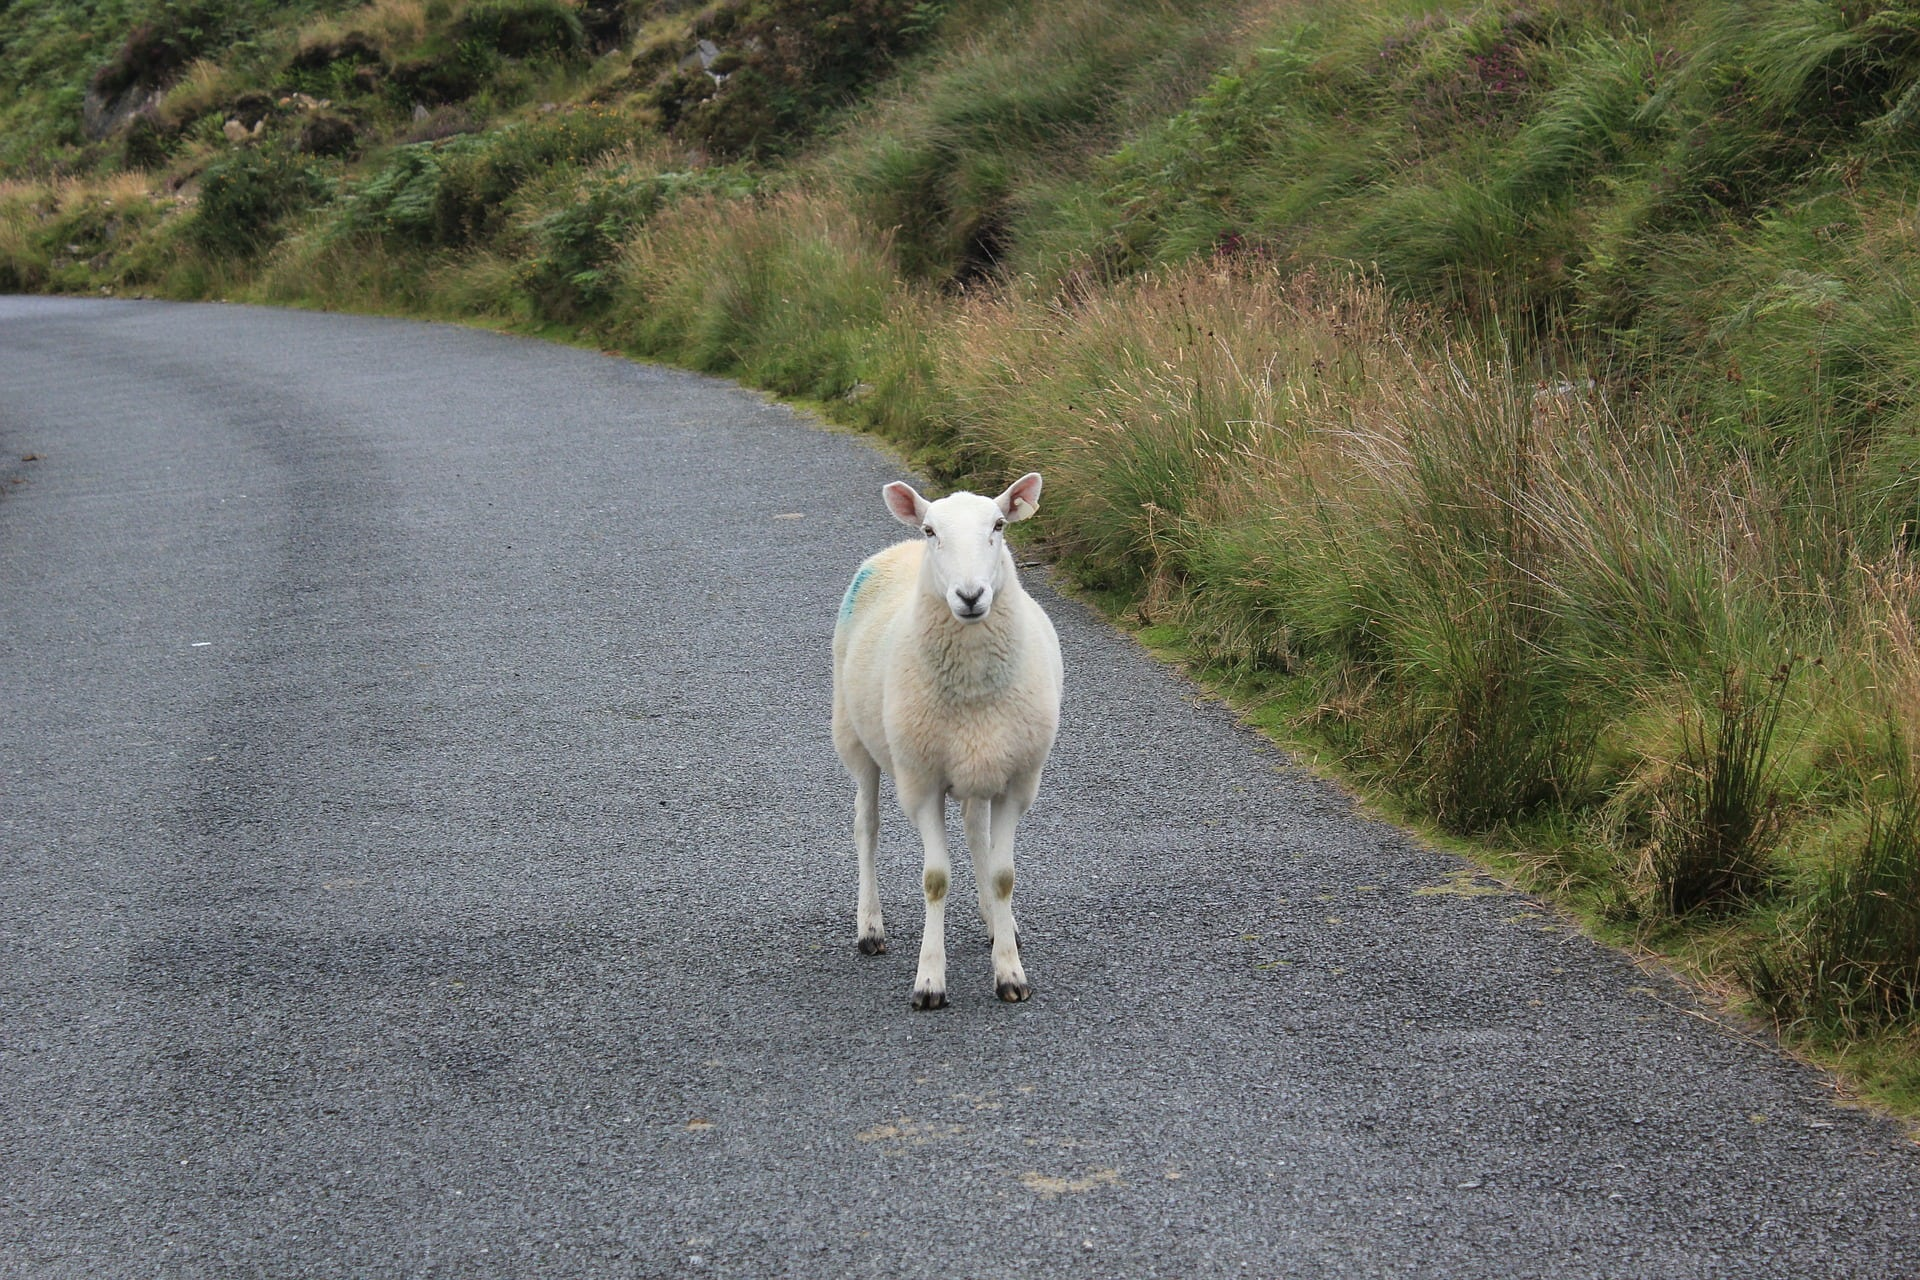 animal friendly travel a sheep in the middle of the road